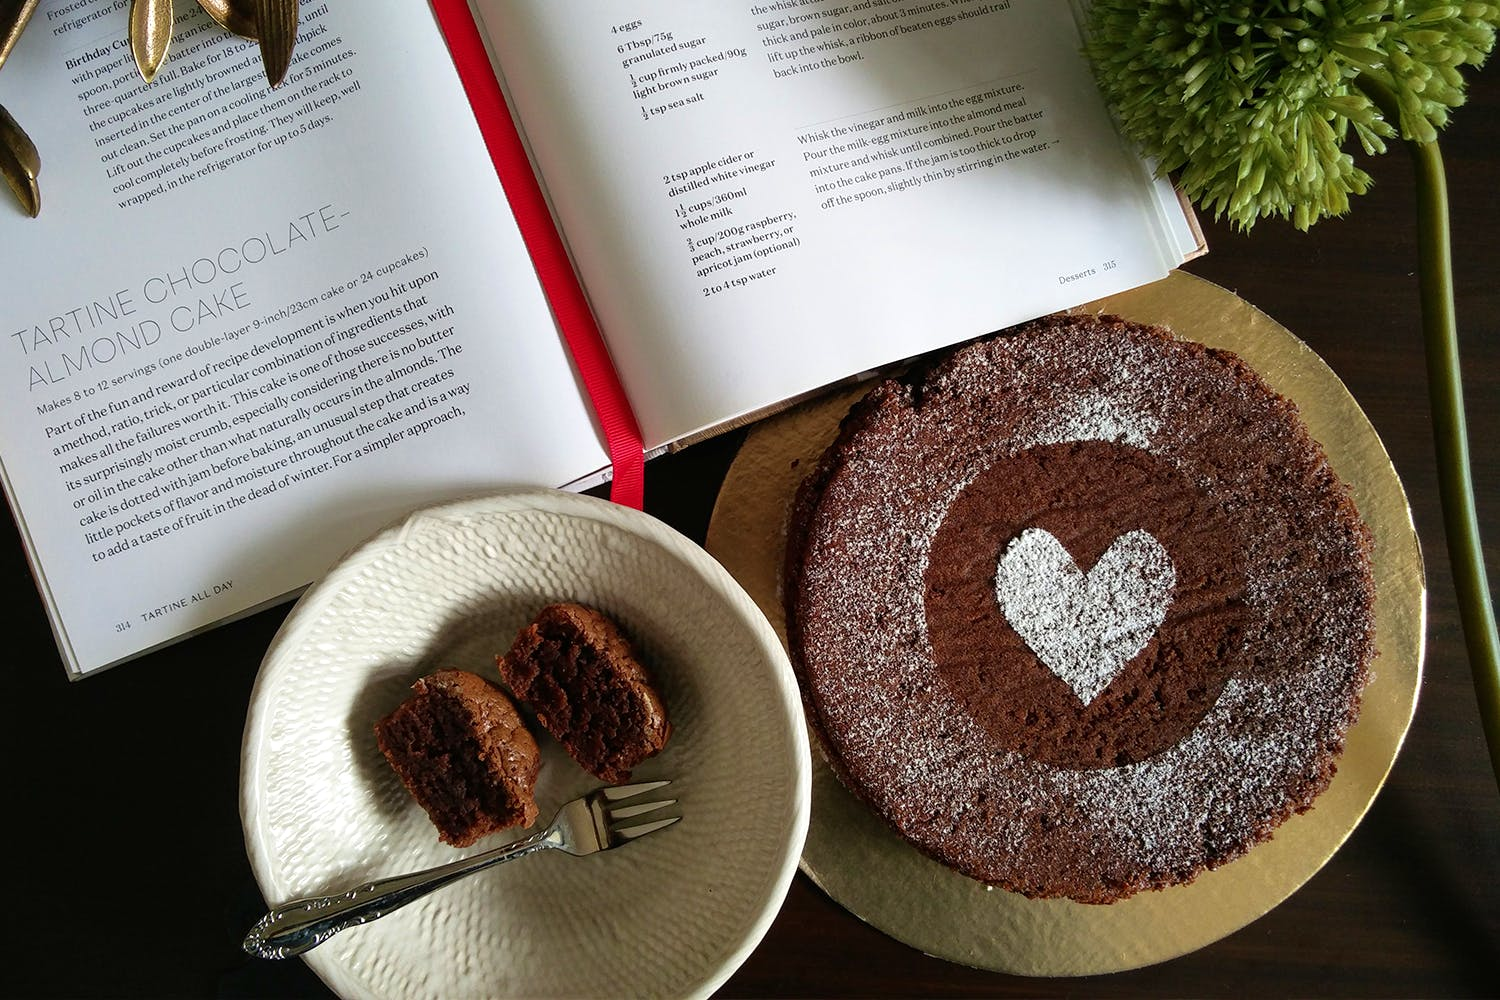 Food,Caffeine,Chocolate,Chocolate cake,Cuisine,Recipe,Chocolate brownie